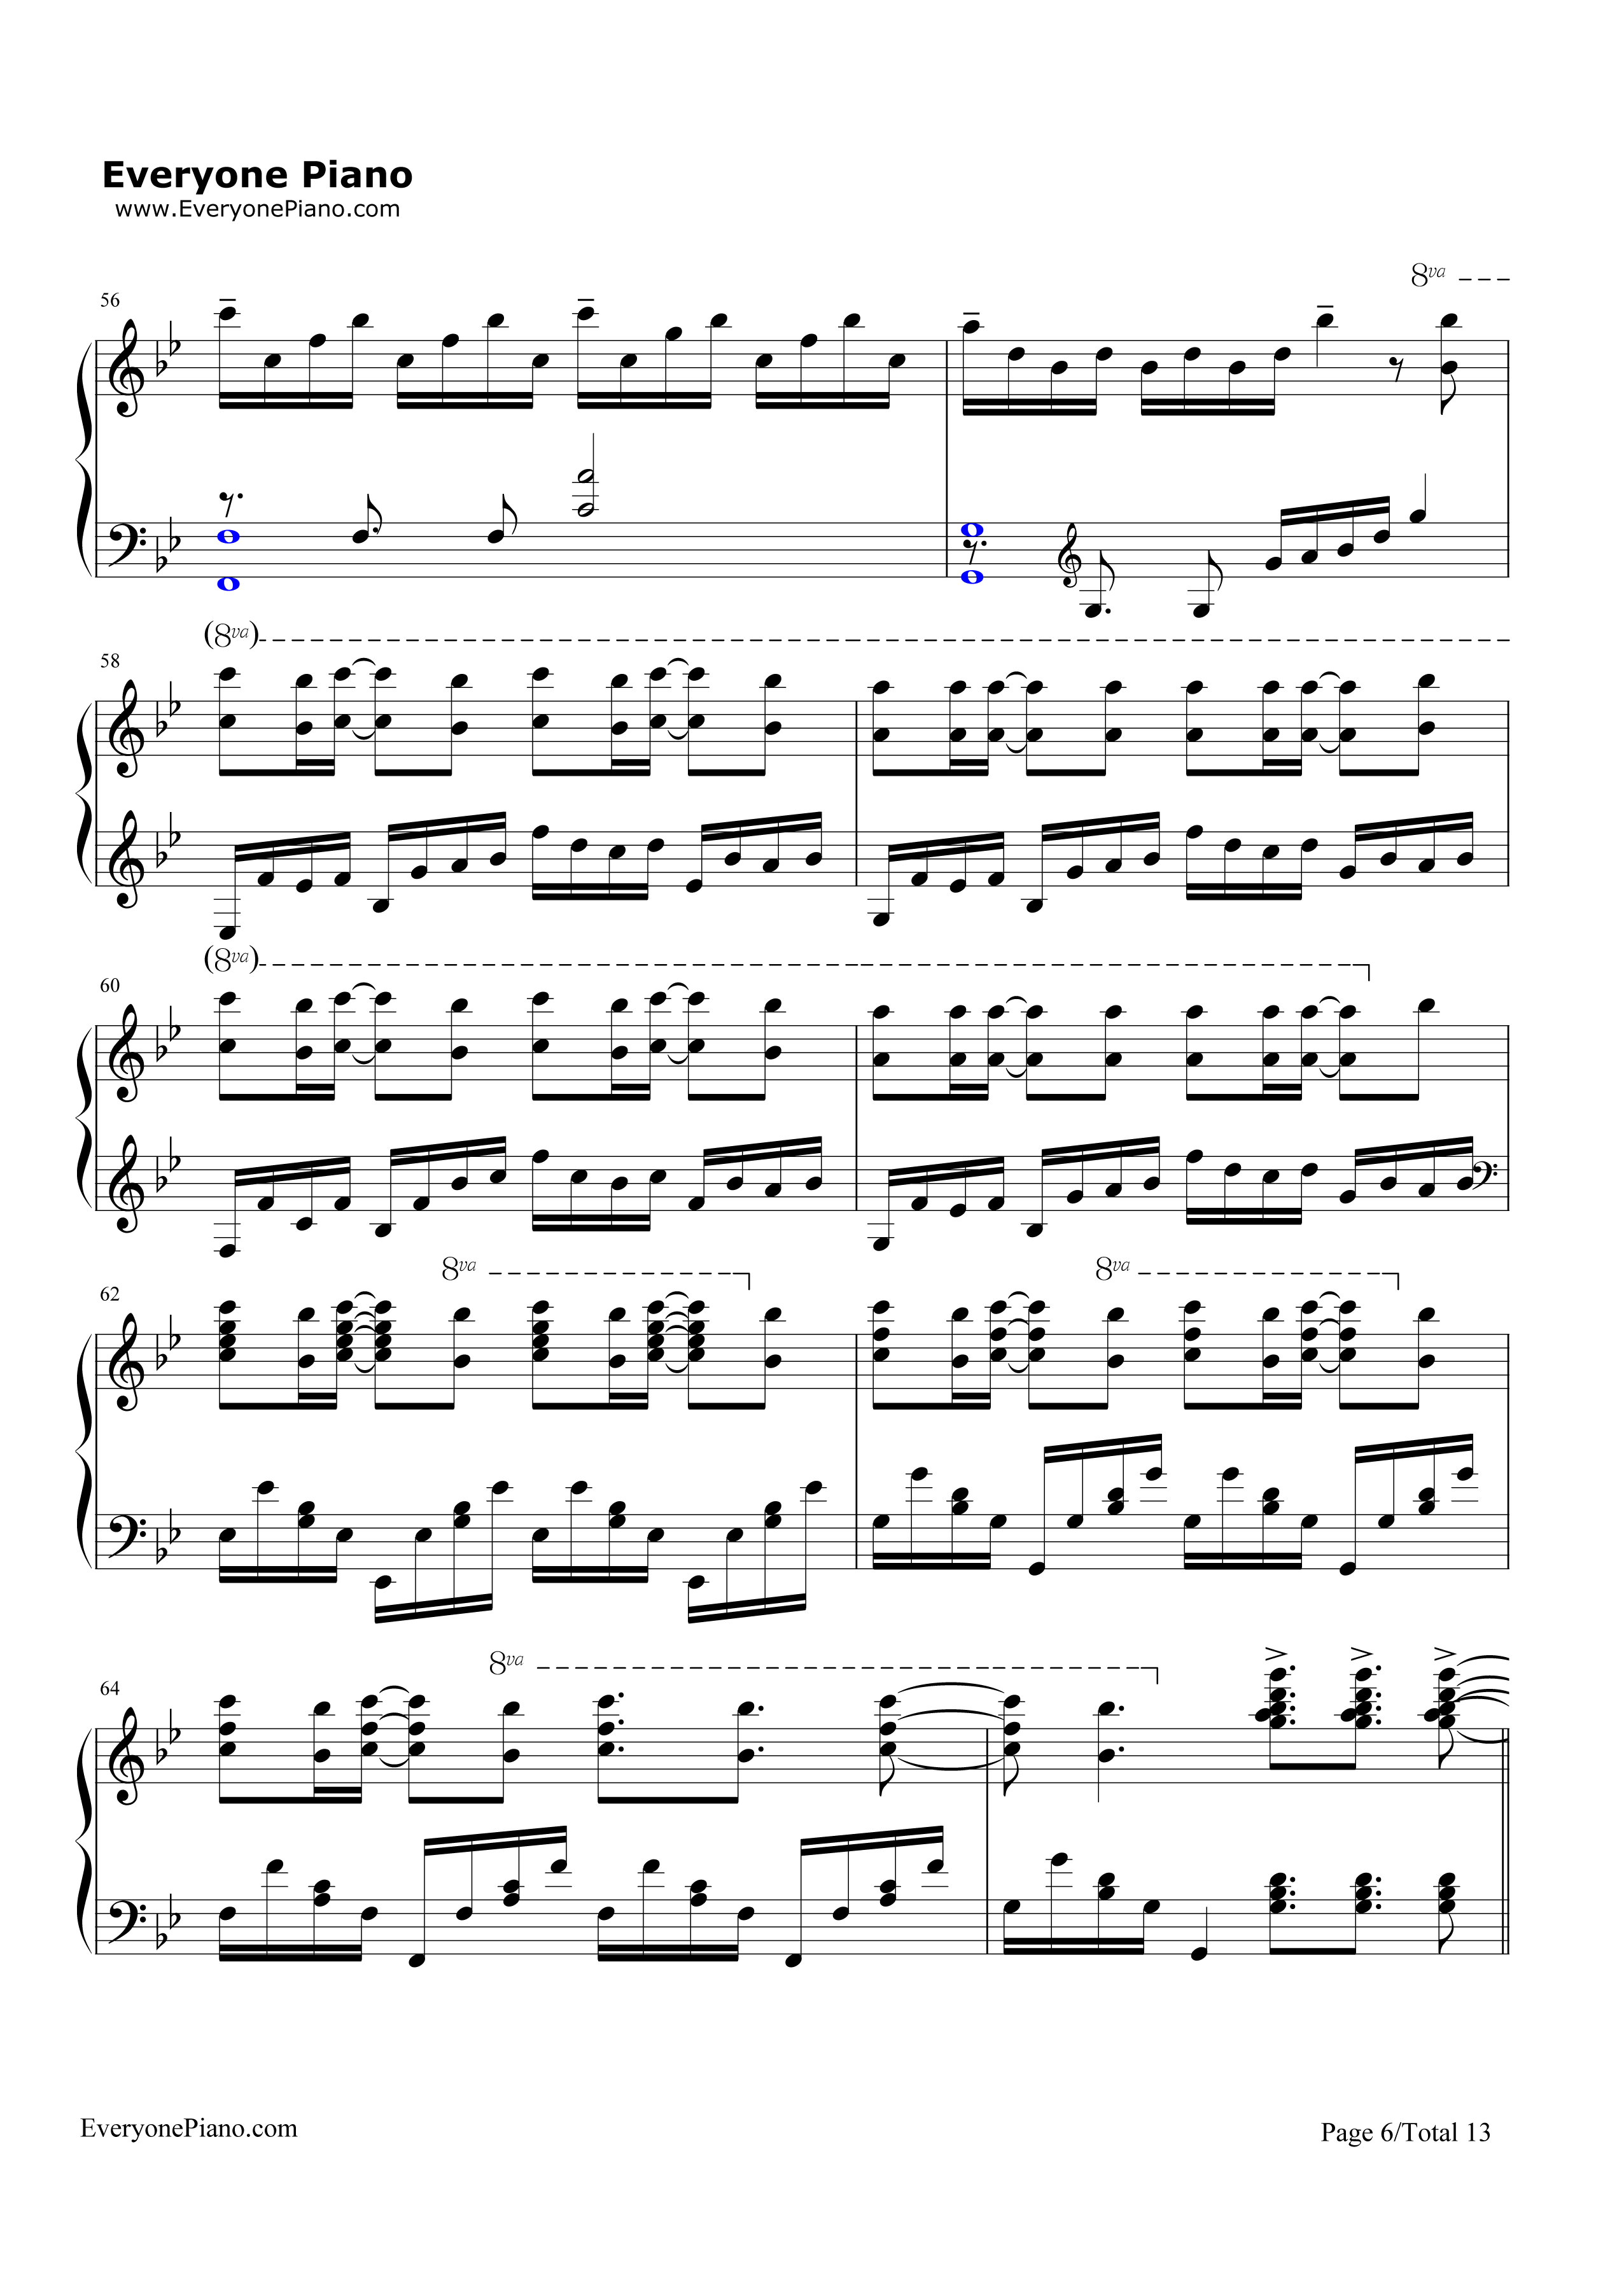 Unravel-Tokyo Ghoul Theme Stave Preview 6-Free Piano Sheet Music u0026 Piano Chords